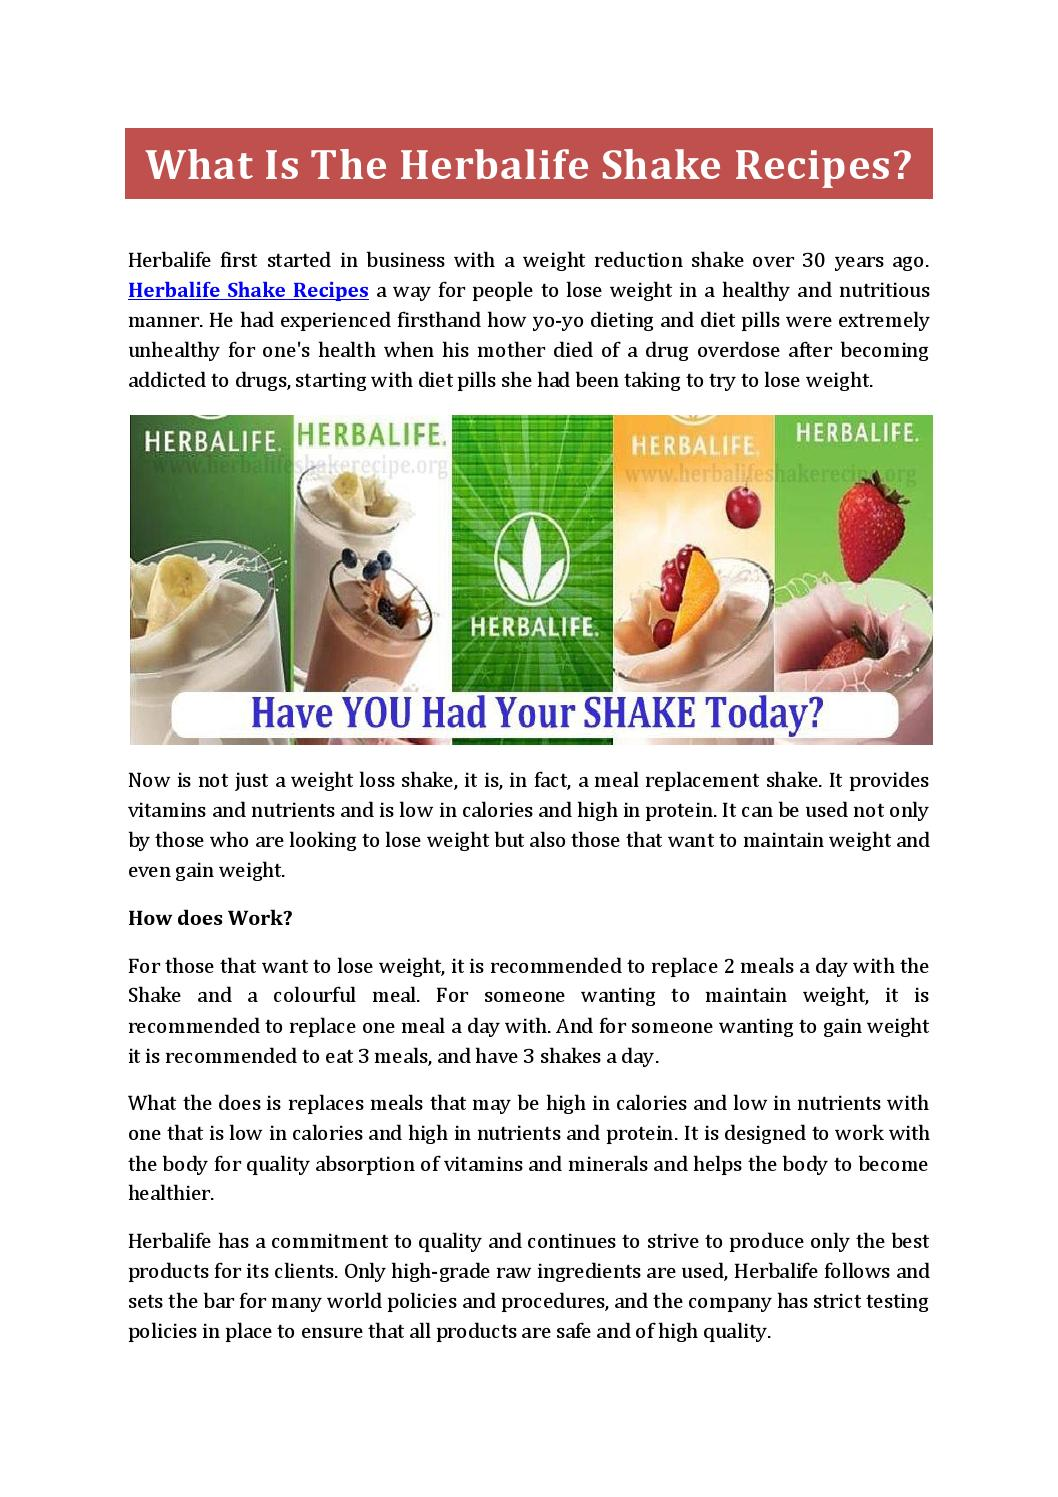 Herbalife Steps To Success: Step-by-step Plan To Lose Weight With Herbalife Shakes By